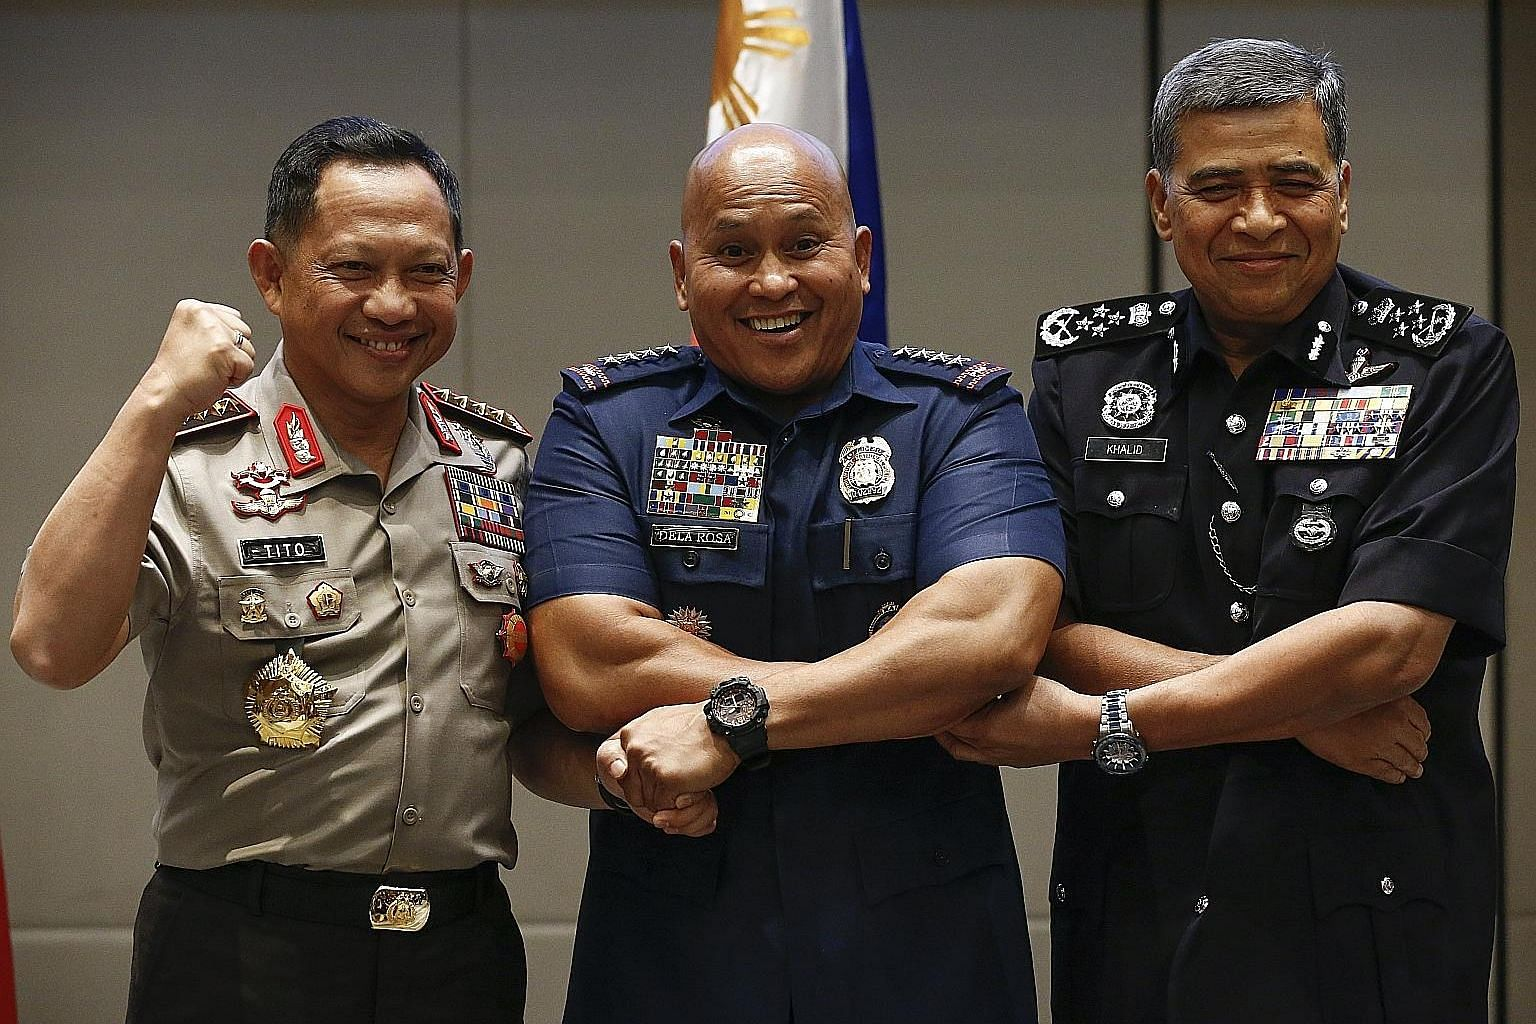 Indonesian Chief of National Police Tito Karnavian (fom left), Philippine National Police Director-General Ronald Dela Rosa and Malaysian Police Inspector-General Khalid Abu Bakar at the conference.